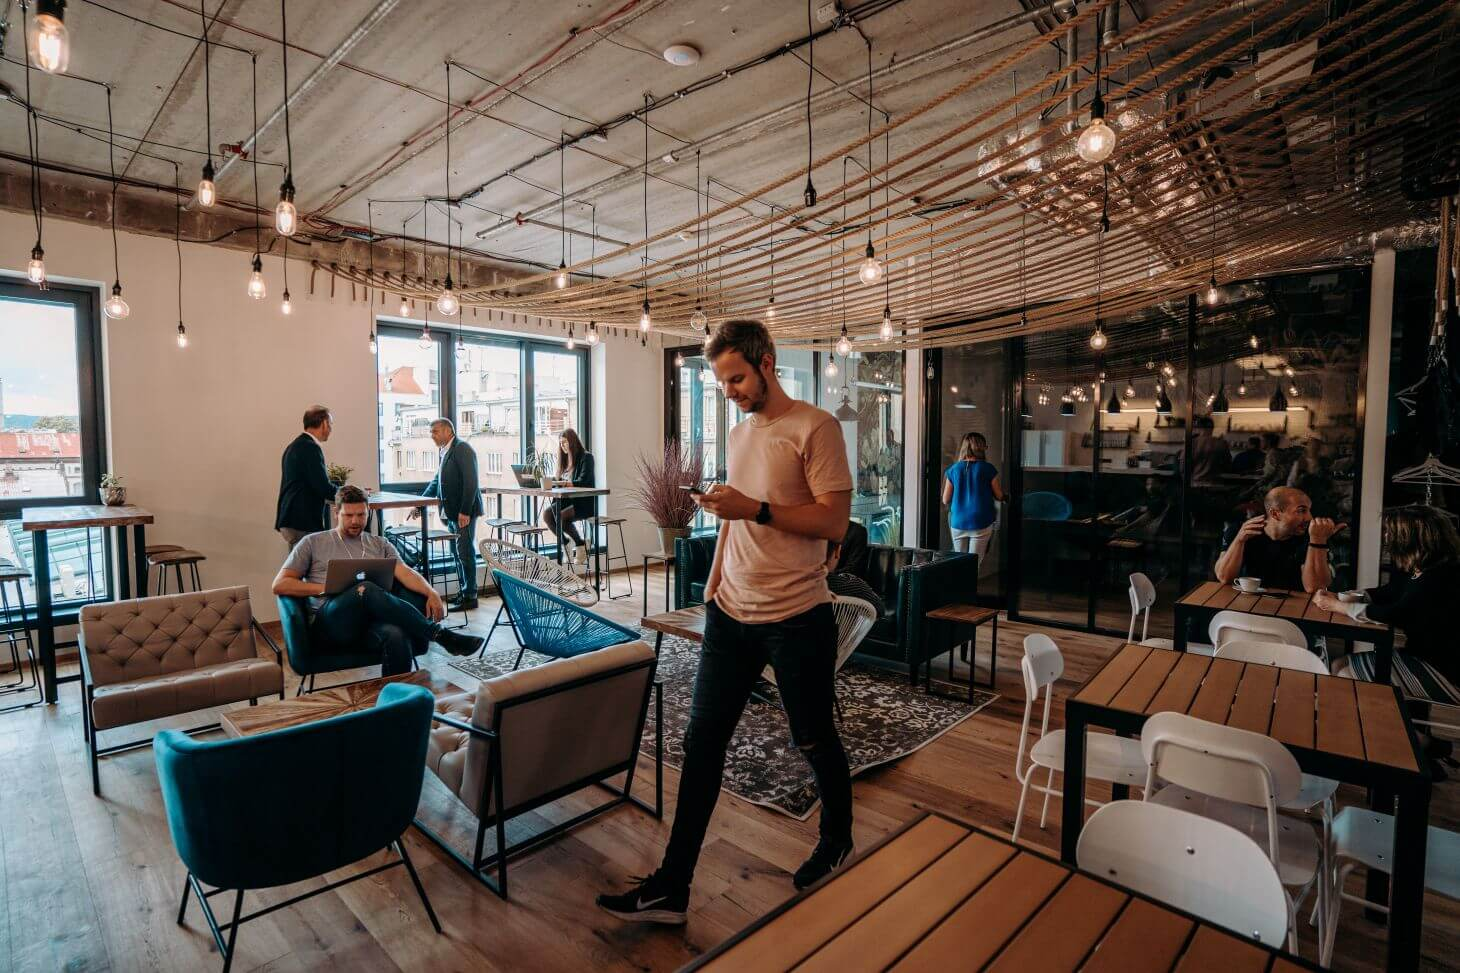 Co Je Coworking? Nahlednete Do Worklounge